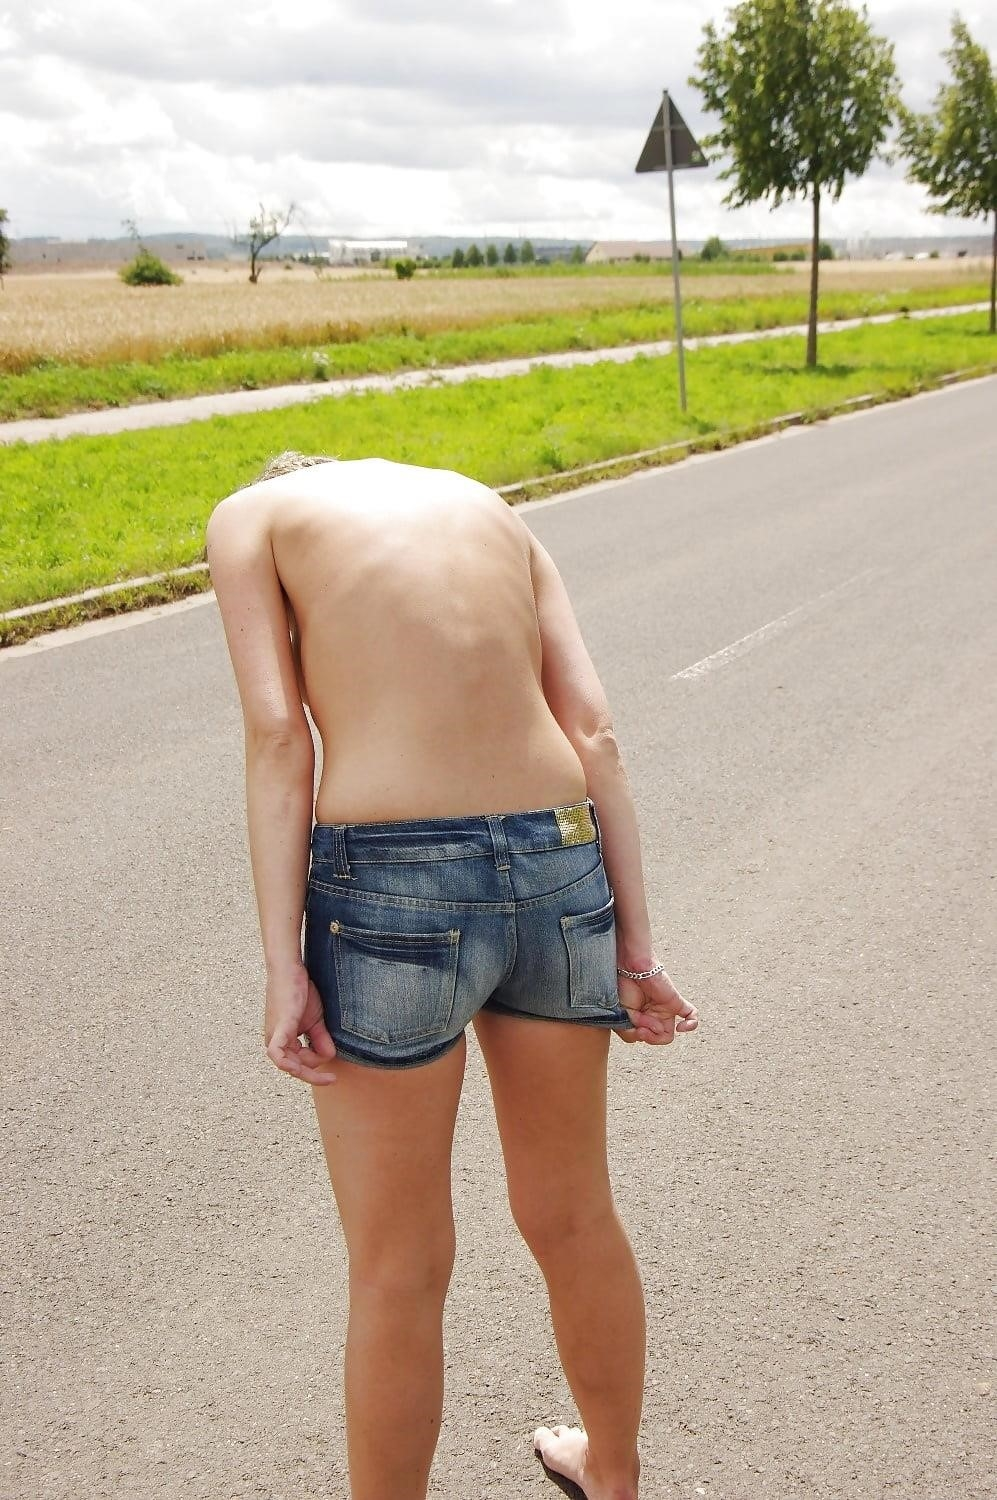 Naked girl with jeans-3259